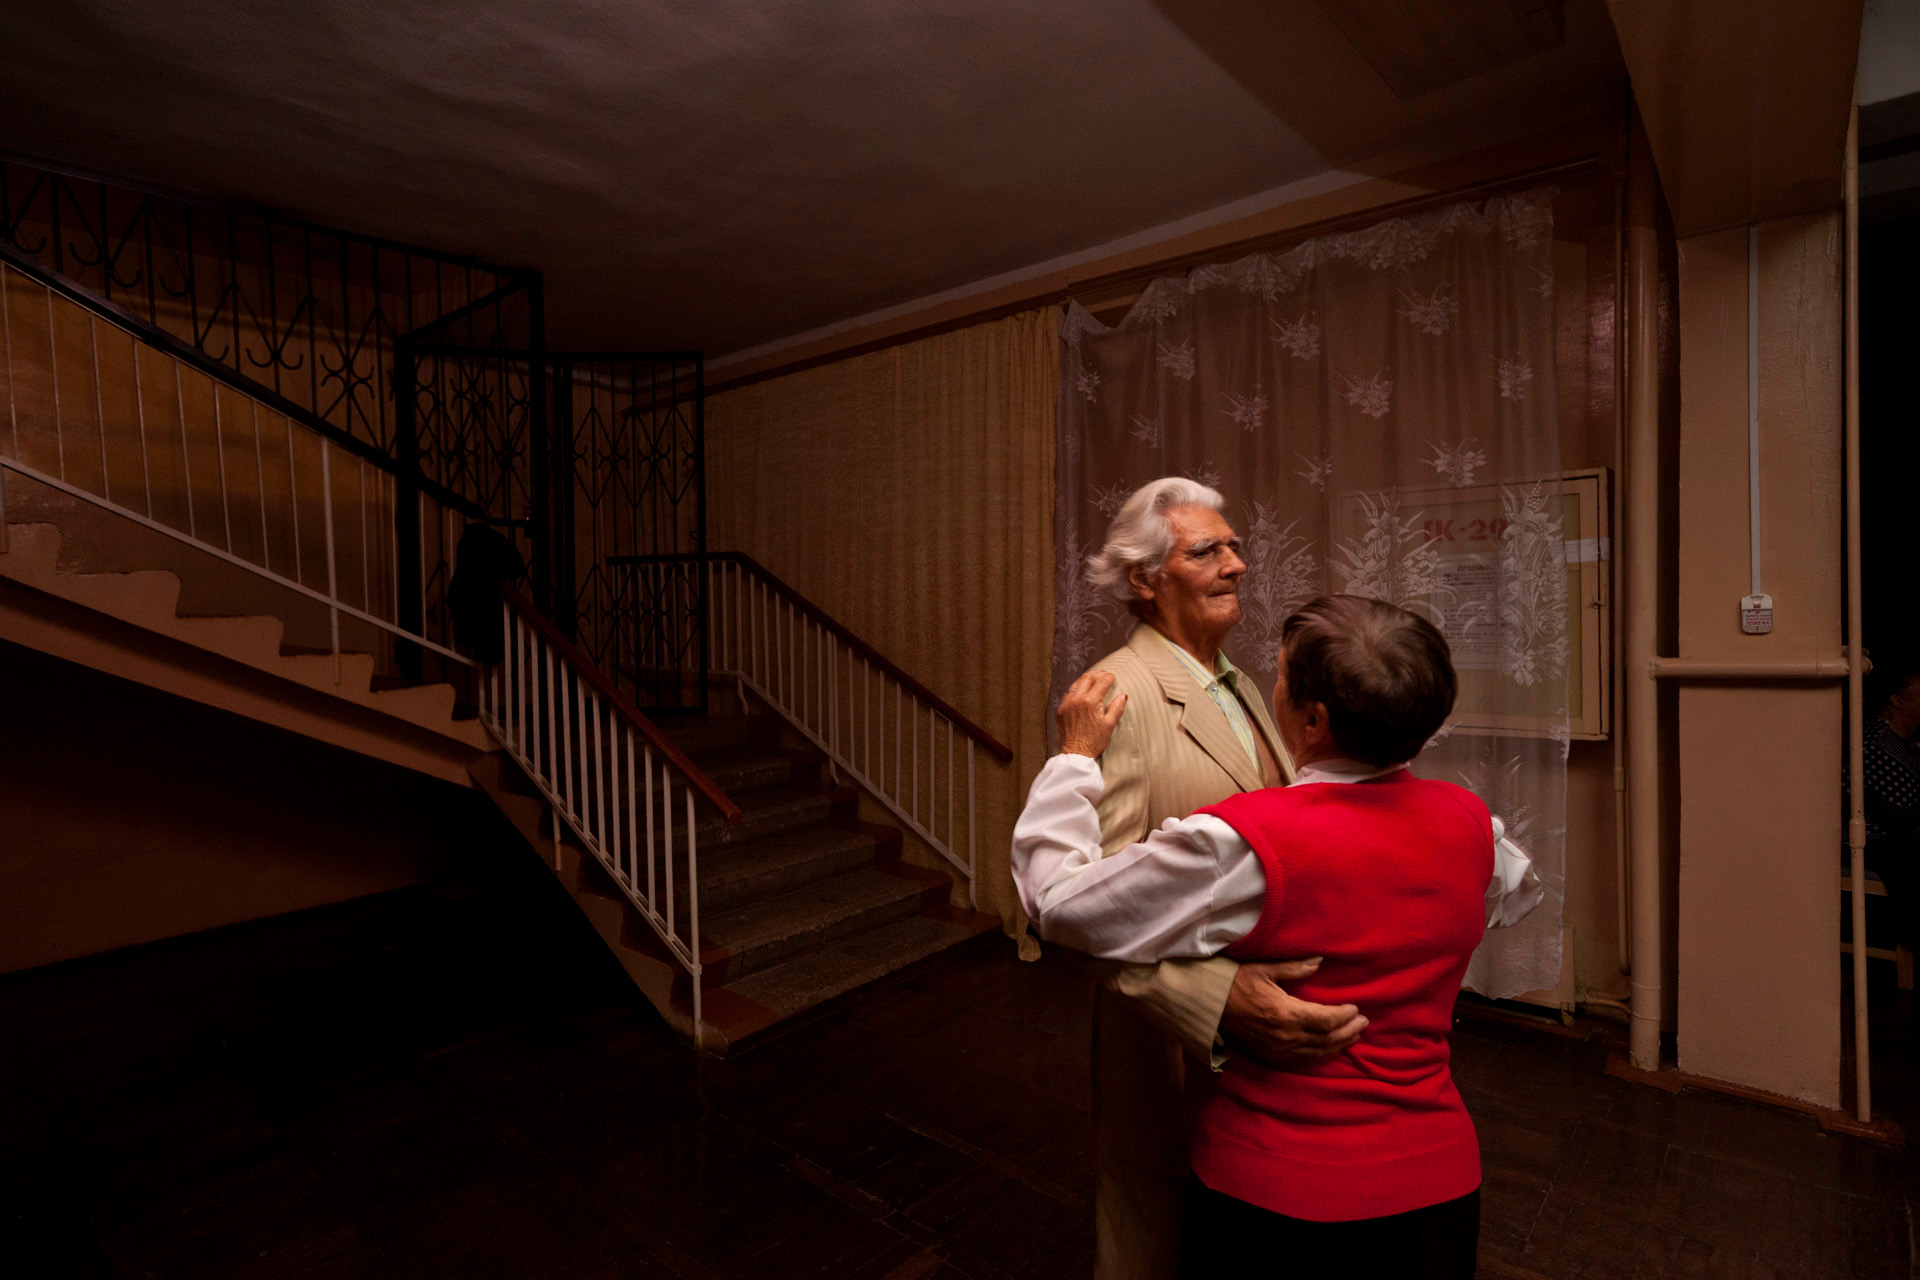 The dances of old age may be slower, but no less sweet, for a couple at the Veterans Sanatorium in Alushta.  Alushta, Crimea